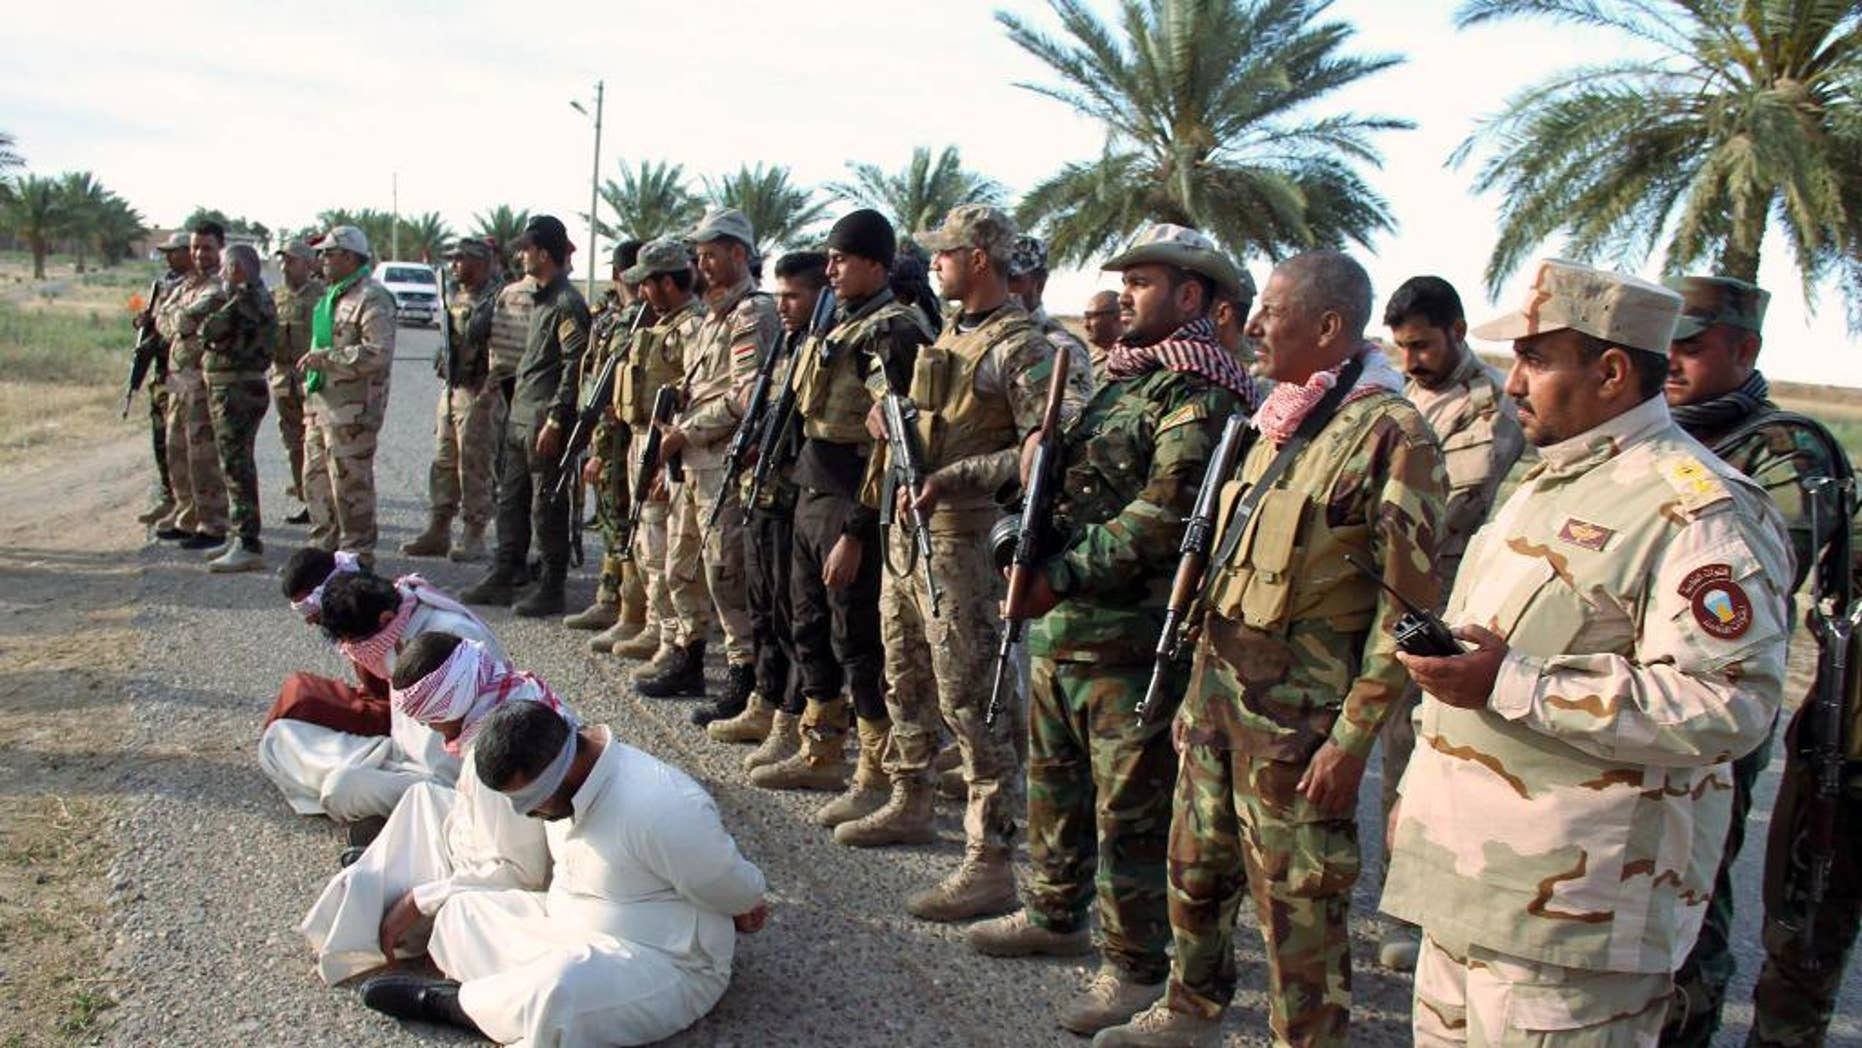 FILE - In this file photo taken Thursday, May 28, 2015, Iraq's Badr Brigades Shiite militia detain four men that they suspect of being militants of the Islamic State group outside the oil refinery in Beiji, some 155 miles (250 kilometers) north of Baghdad, Iraq. Iraqi troops backed by Shiite militias recaptured key parts of the northern refinery town of Beiji from Islamic State militants on Sunday, June 7, a general said. (AP Photo, File)